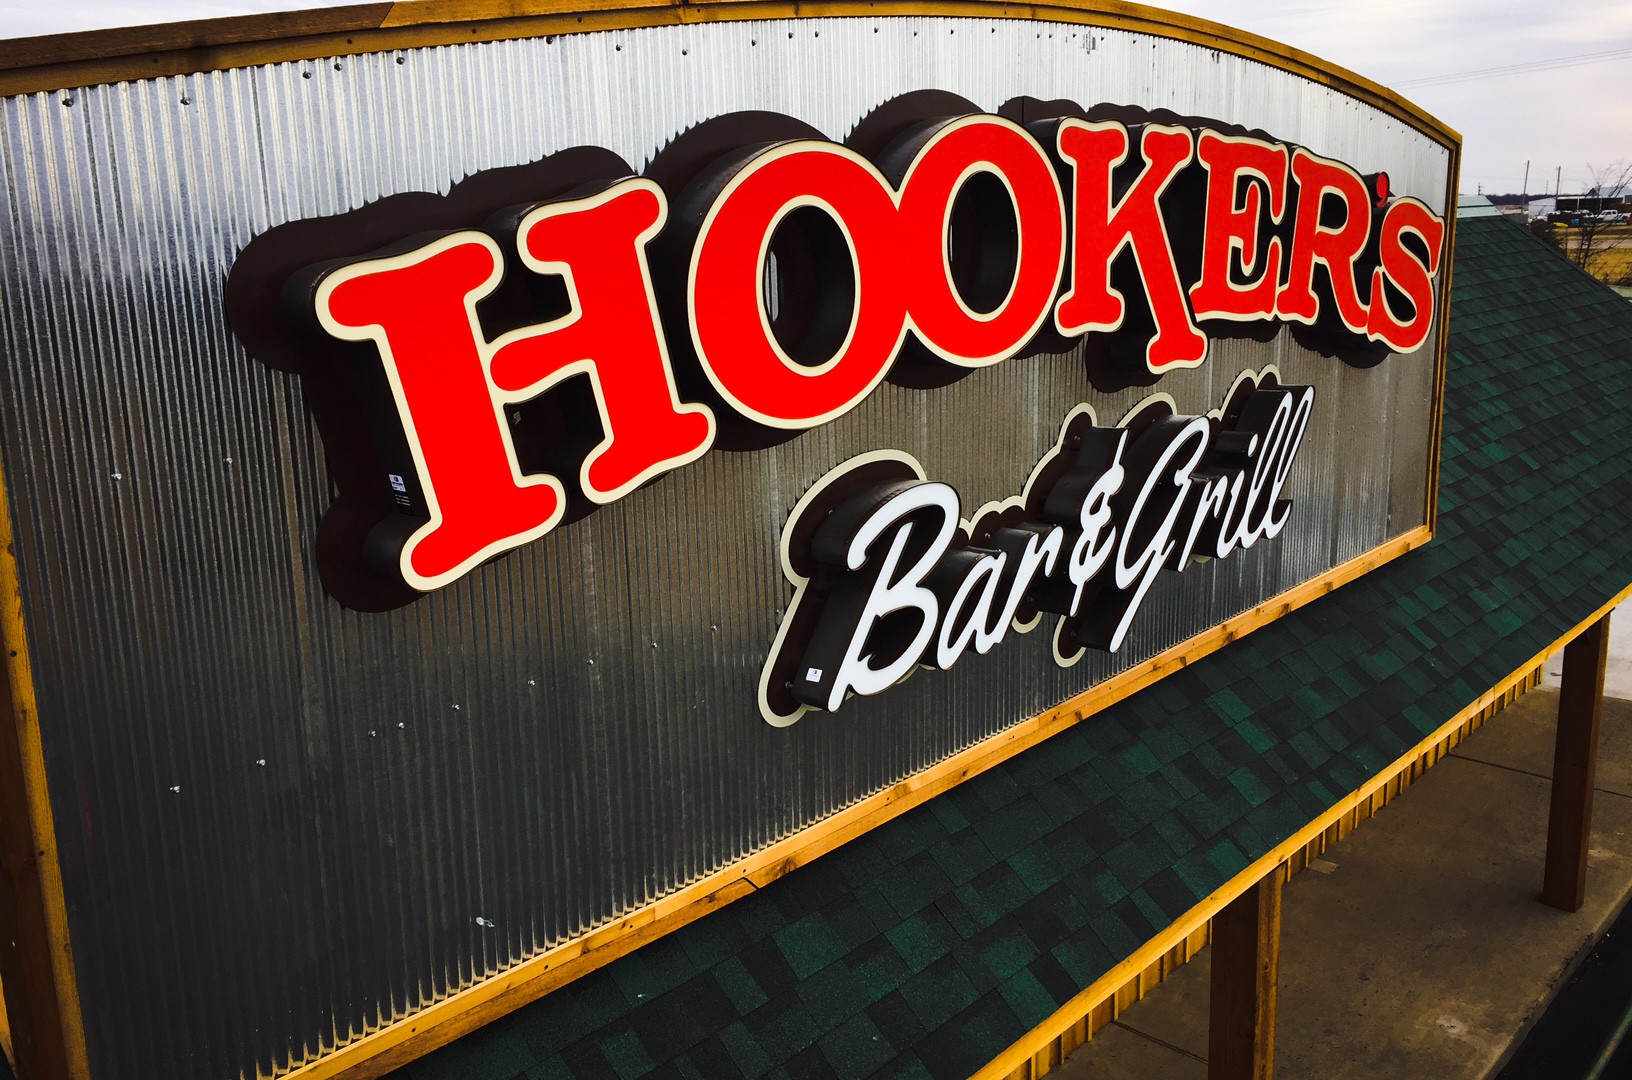 Hookers Bar & Grill